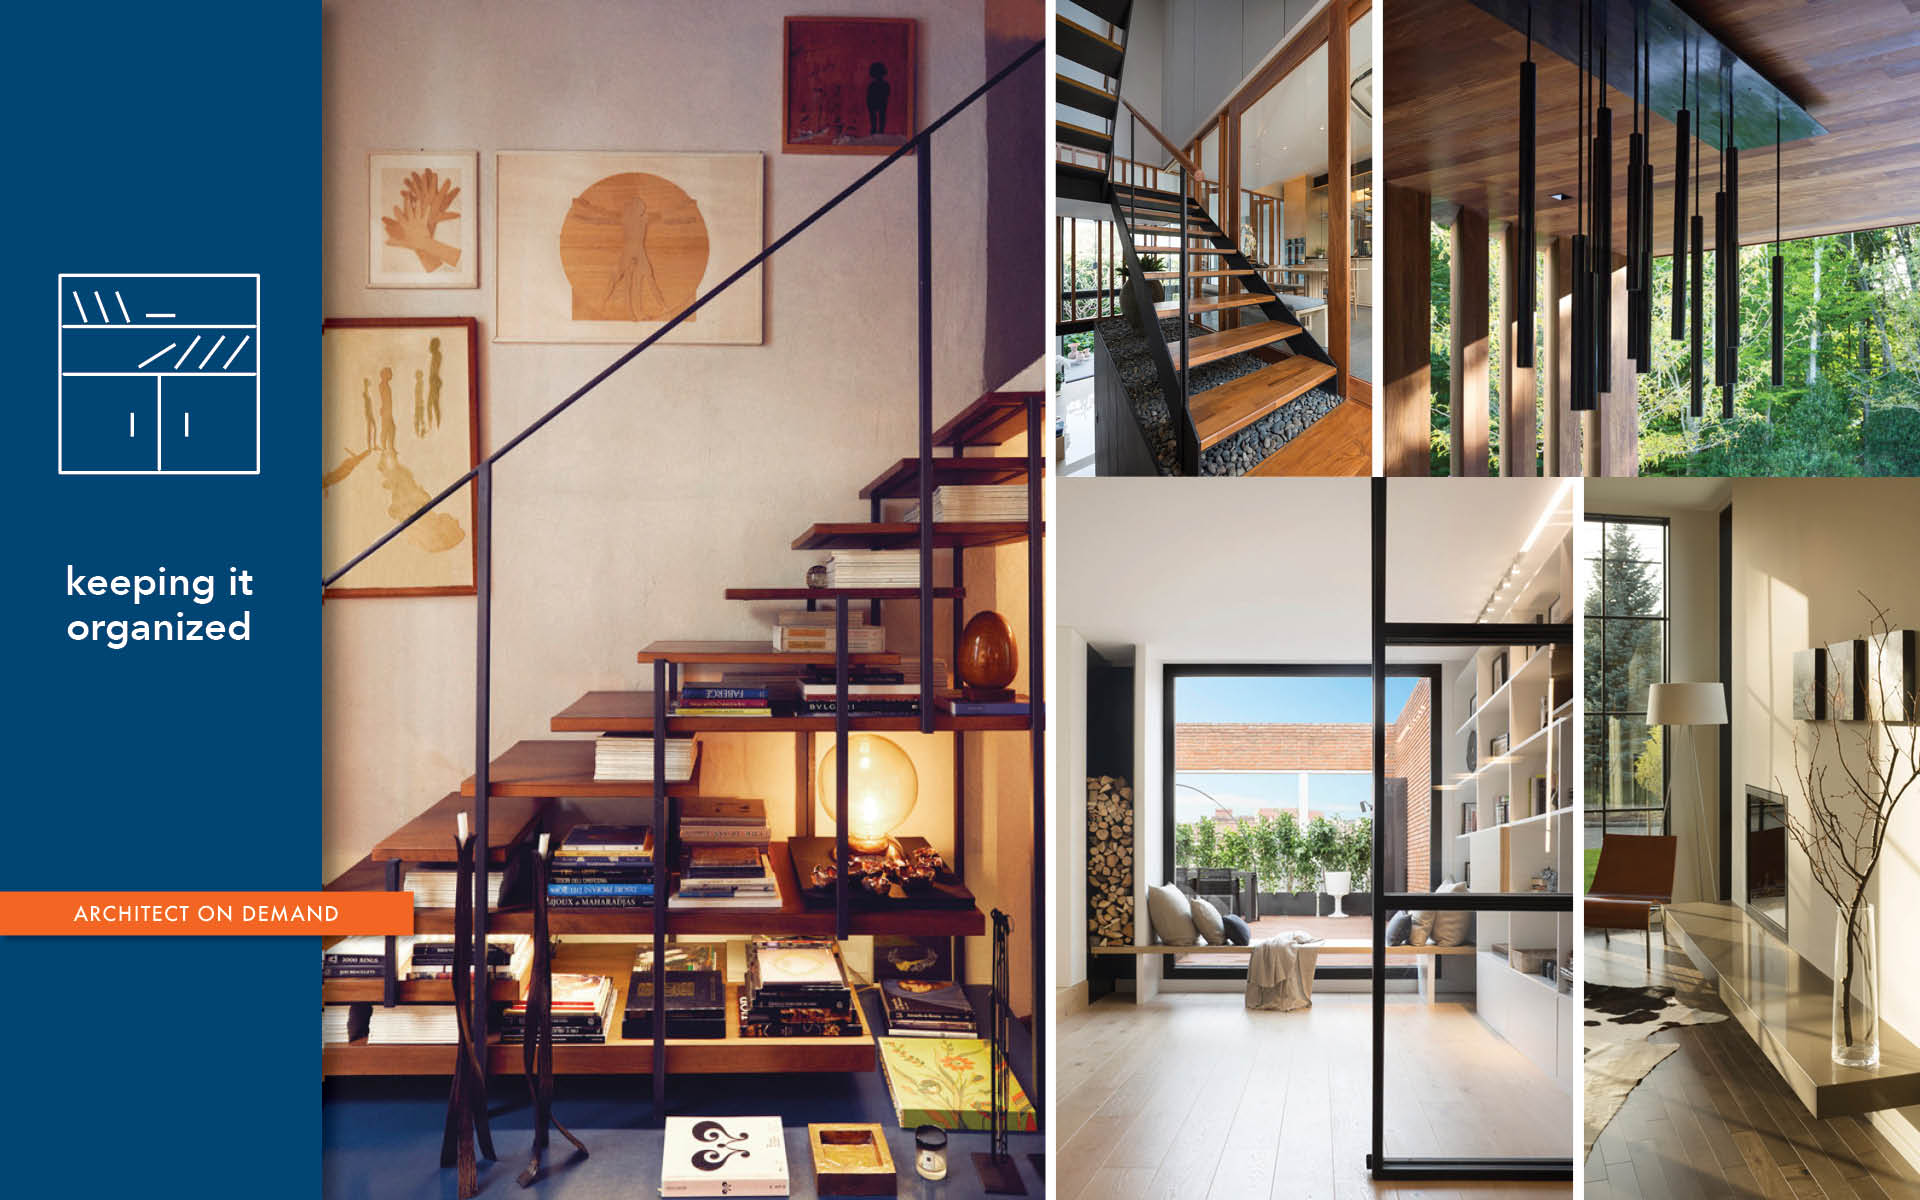 organizing, ideas, beautification, lobby, architect-on-demand, advice-without-strings